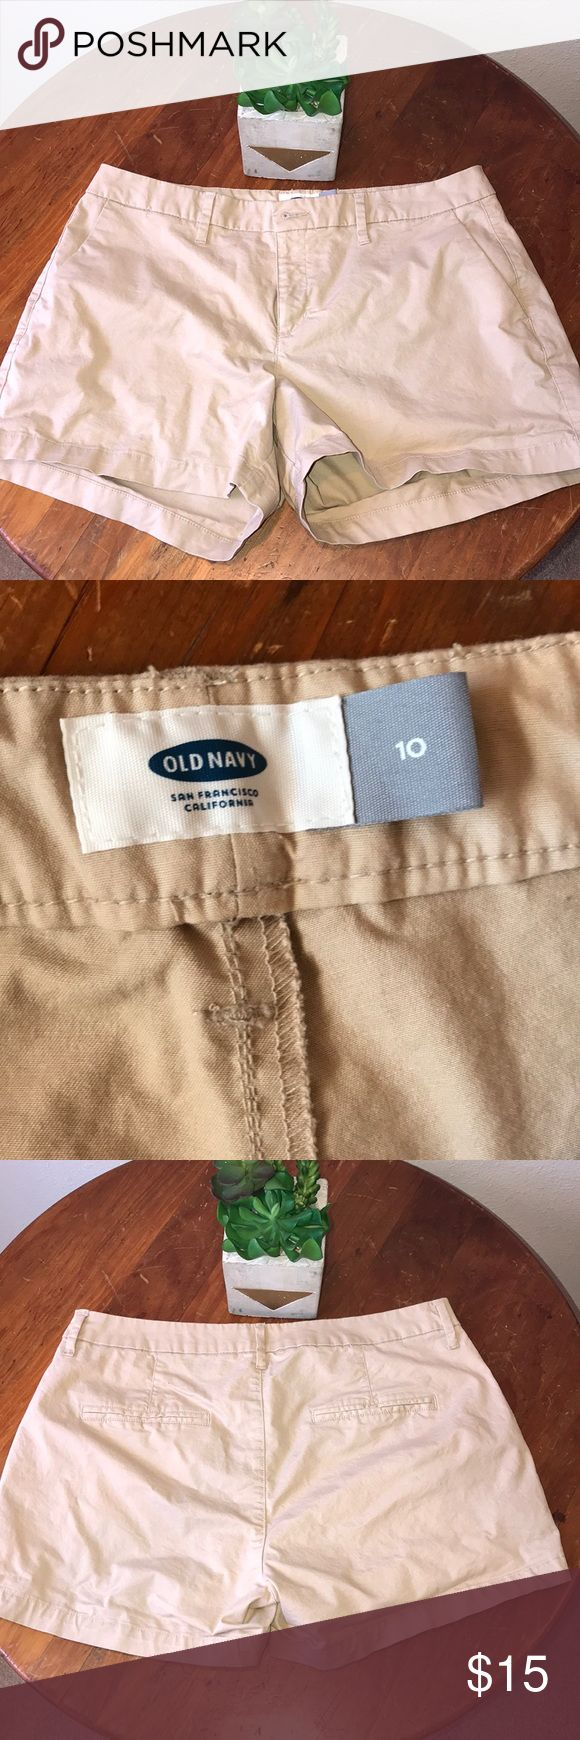 """Tan chino shorts LIKE NEW, Old navy, size 10. Length 3 1/2."""" tan color. A great basic short for spring and summer. I ❤️offers! Old Navy Shorts"""